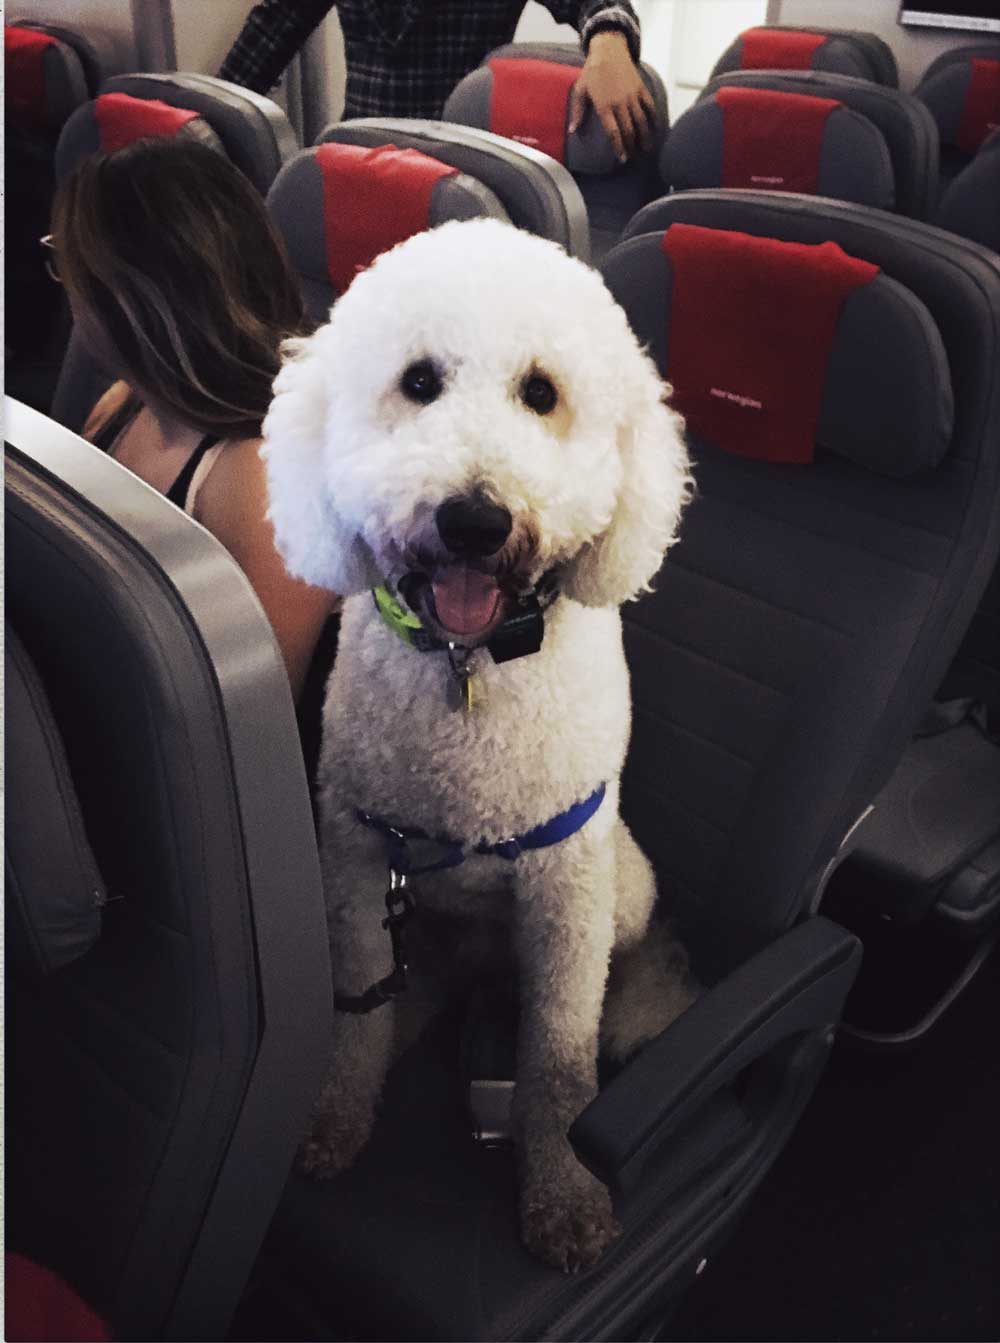 traveling with an emotional support animal on united airlines